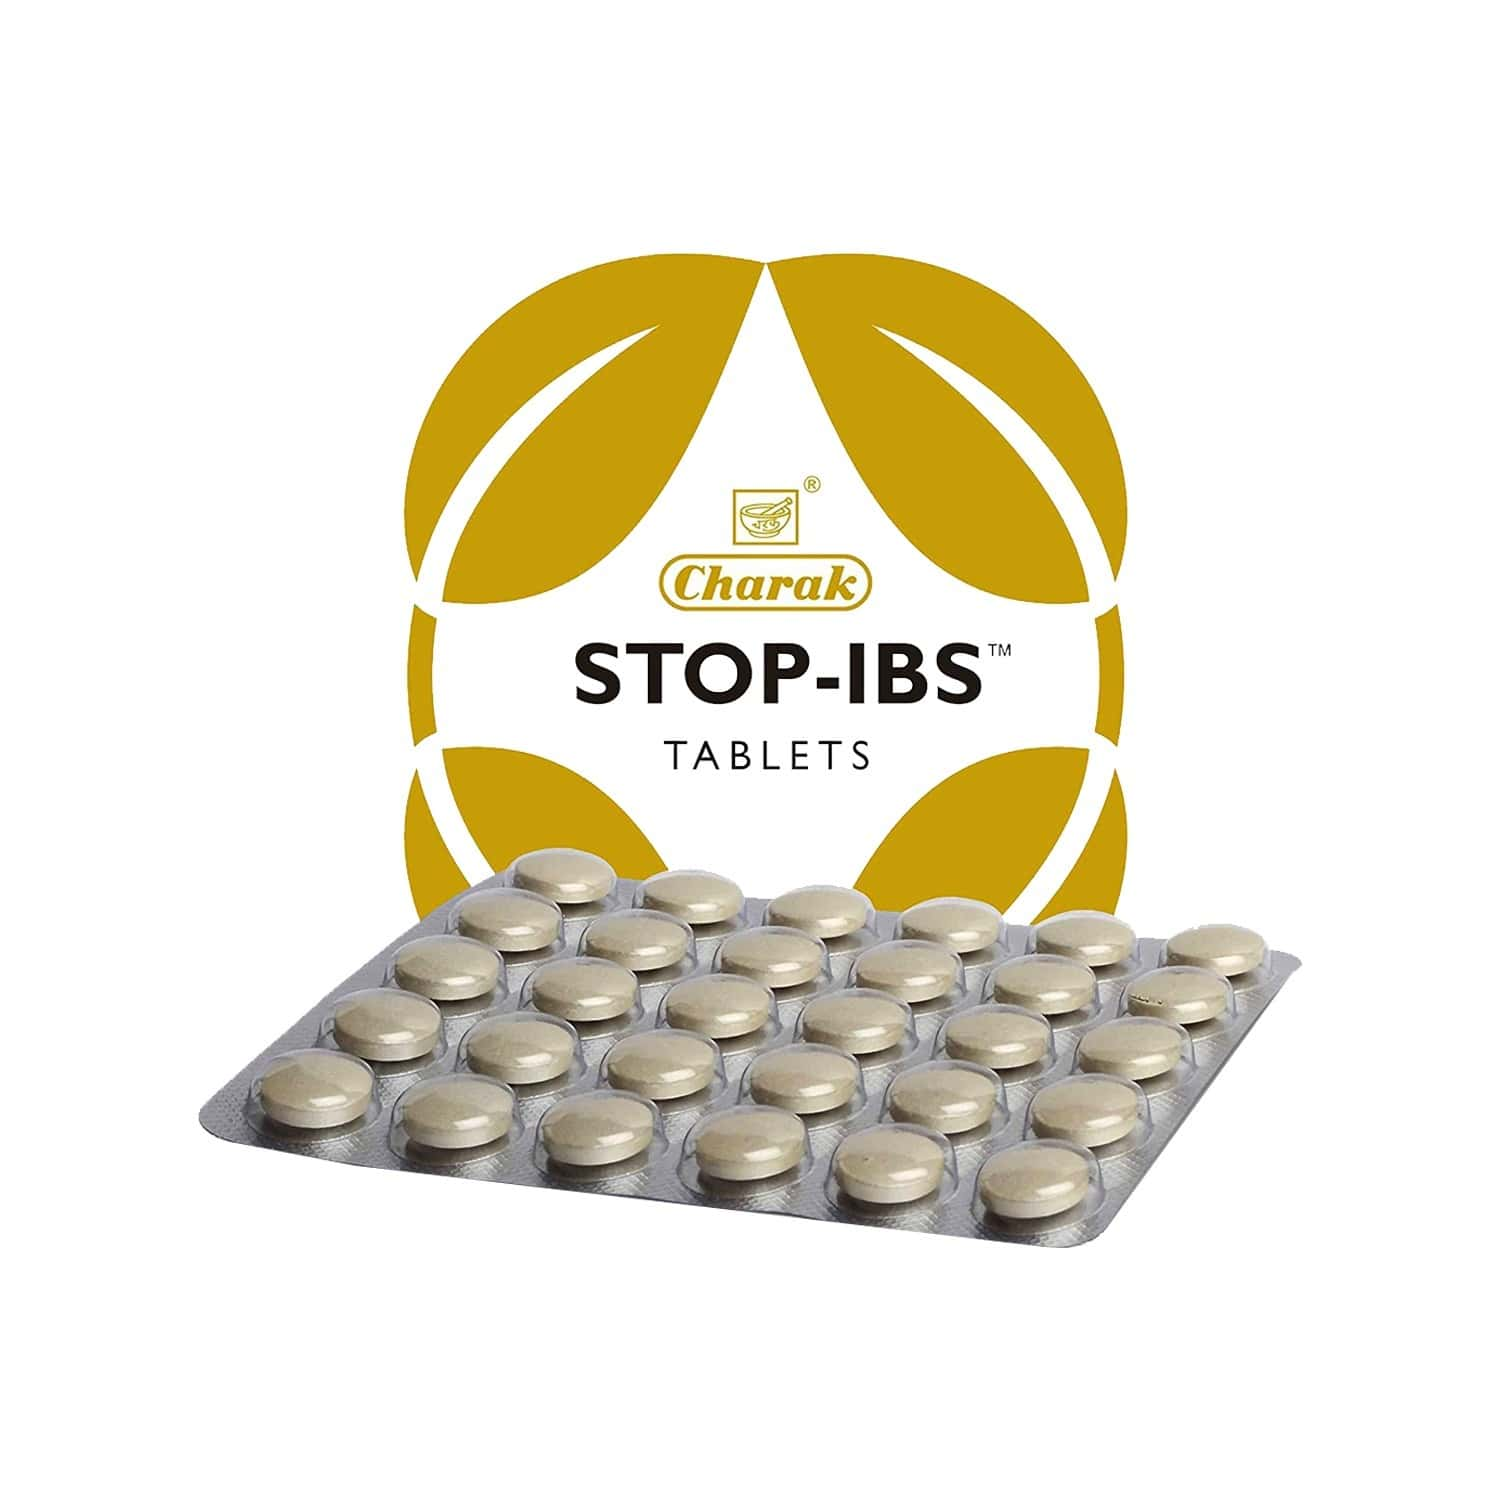 Charak Stop-ibs Tablets